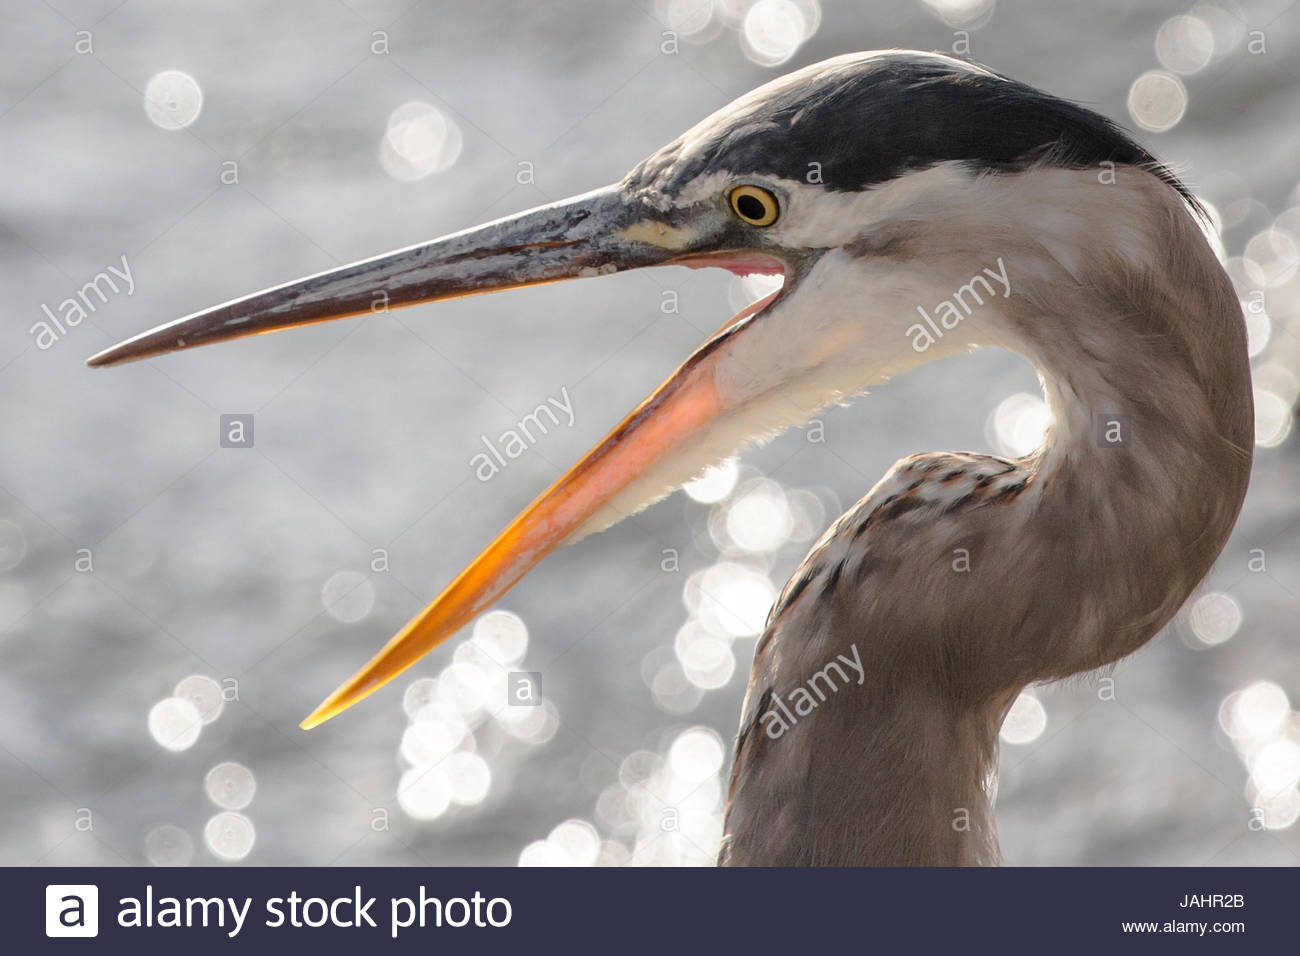 Close up portrait of a great blue heron, Ardea herodias, with its beak open. - Stock Image